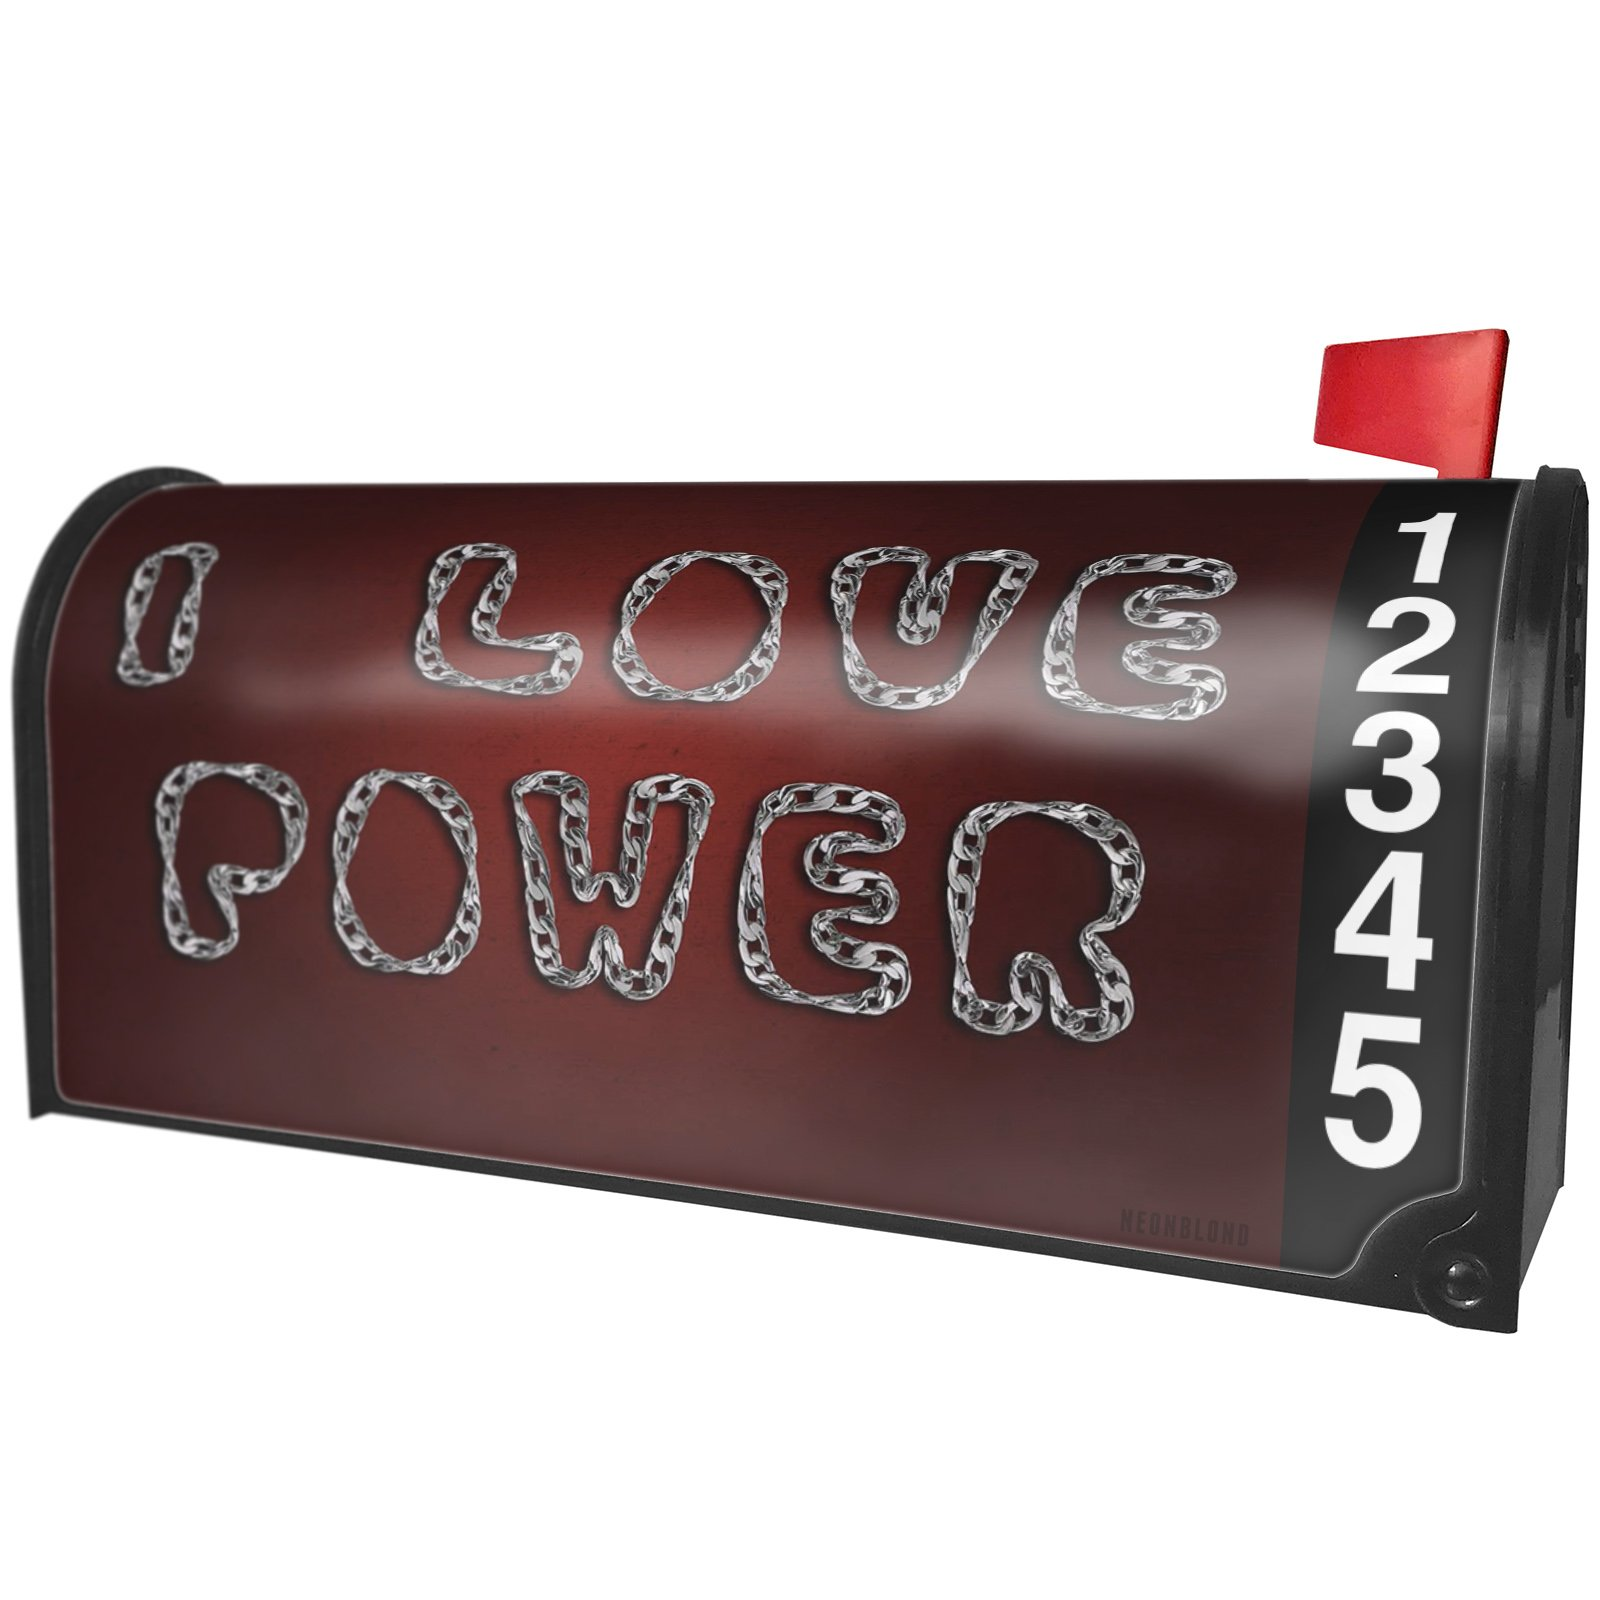 NEONBLOND I Love Power Silver Chain Lettering Magnetic Mailbox Cover Custom Numbers